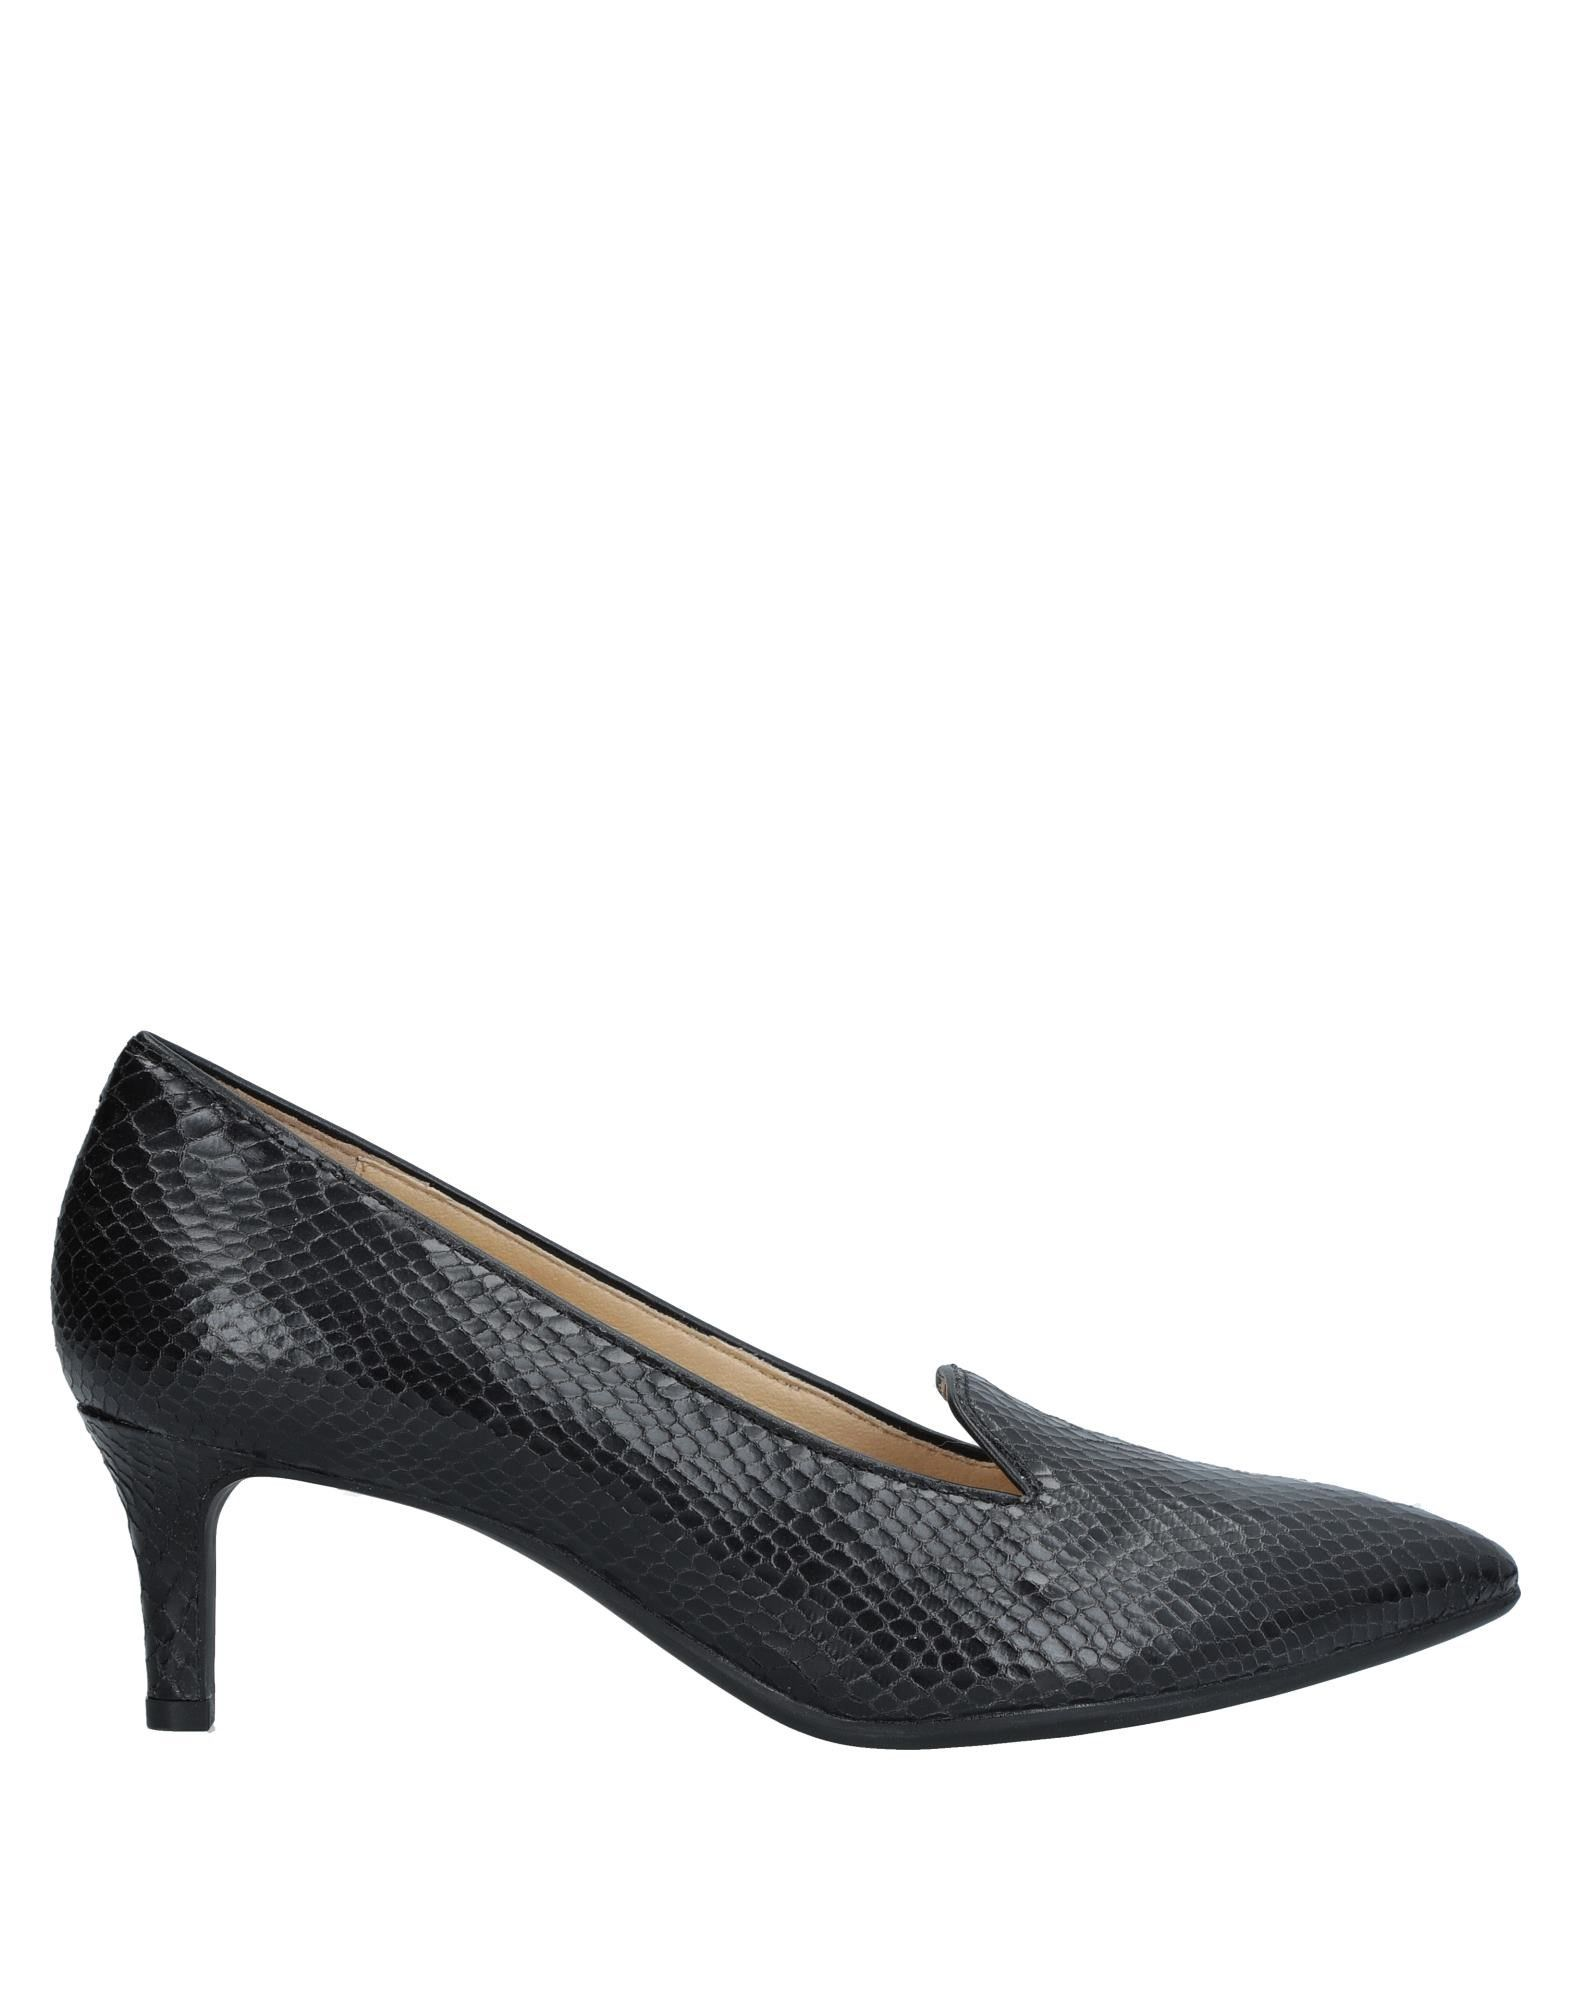 Geox Loafers  - Women Geox Loafers online on  Loafers Australia - 11540961LB dd1e1b